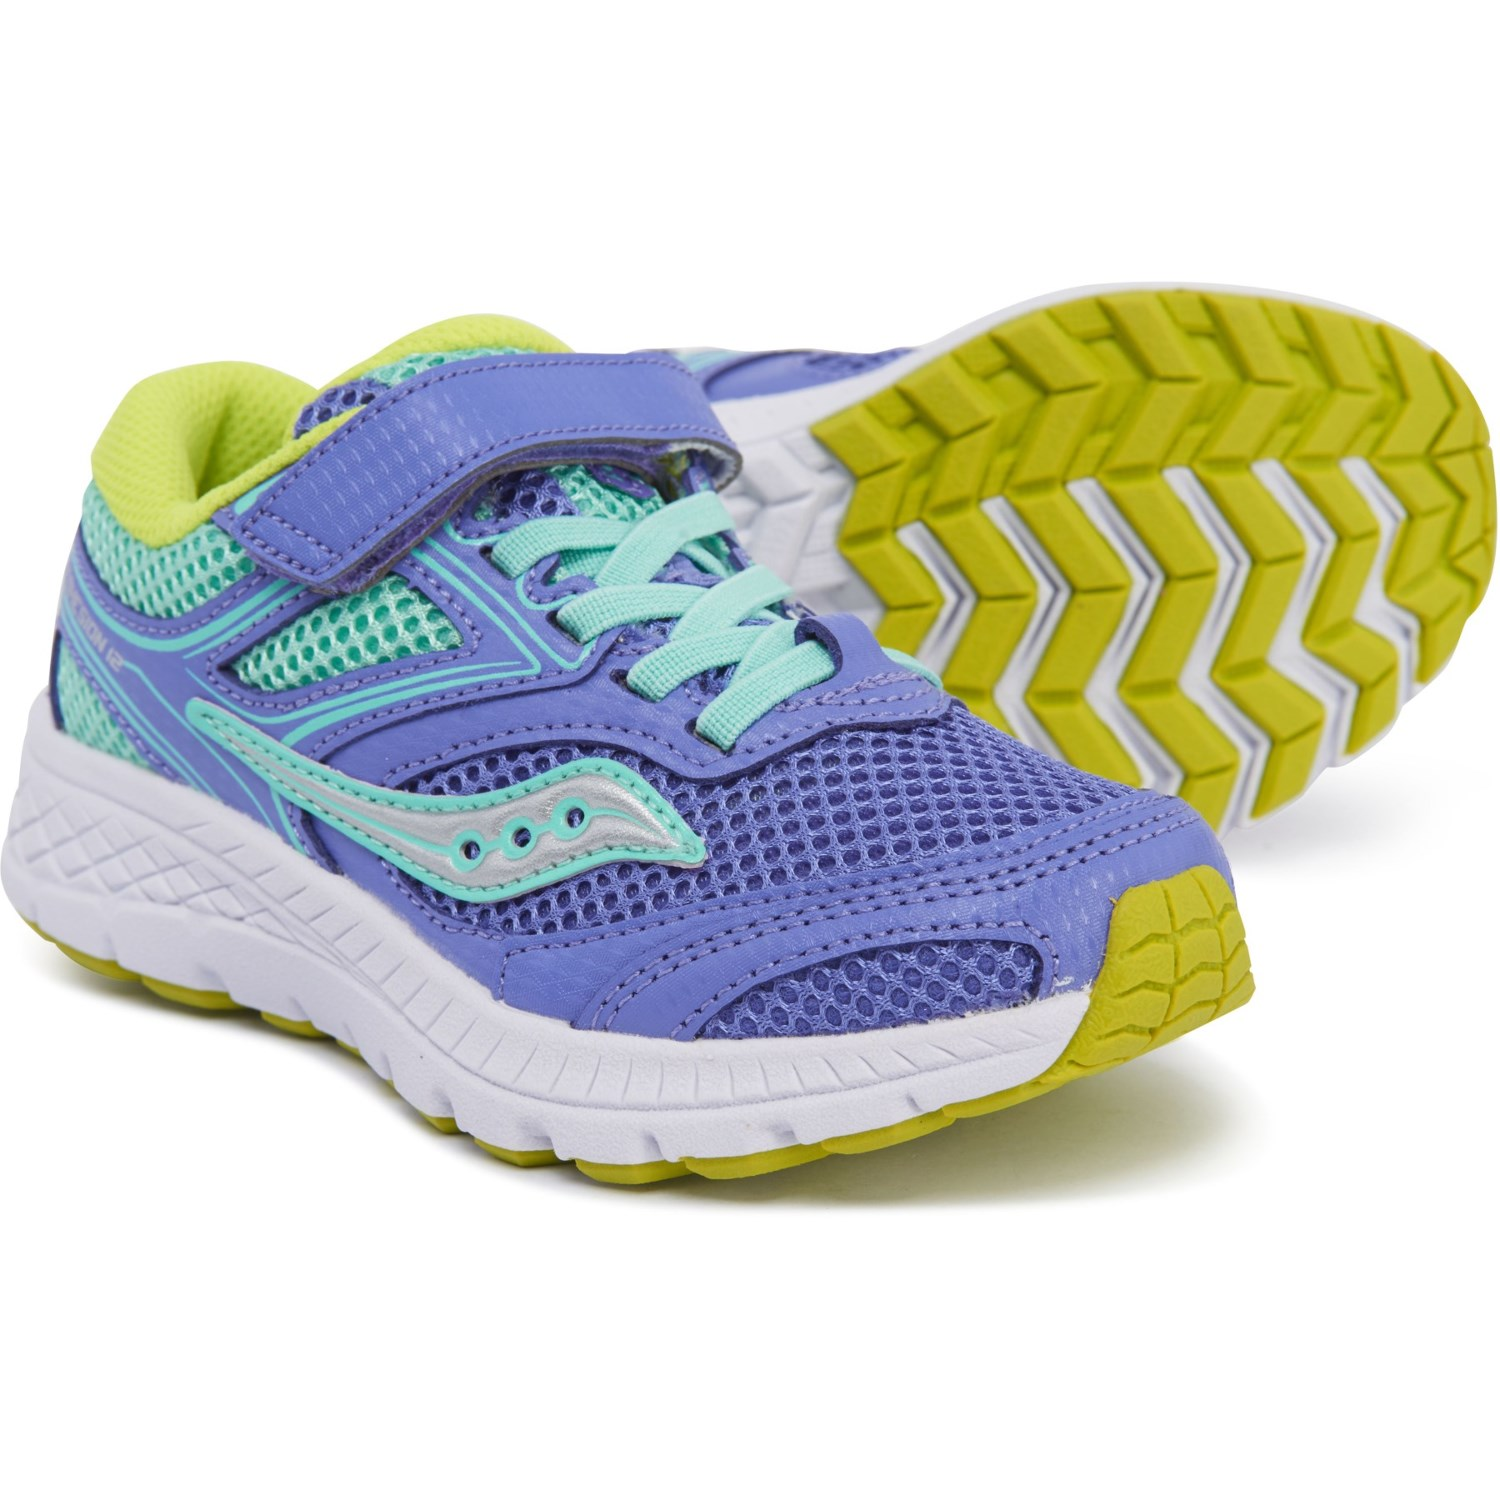 2aabee50 Saucony Cohesion 12 A/C Running Shoes (For Girls) - Save 37%